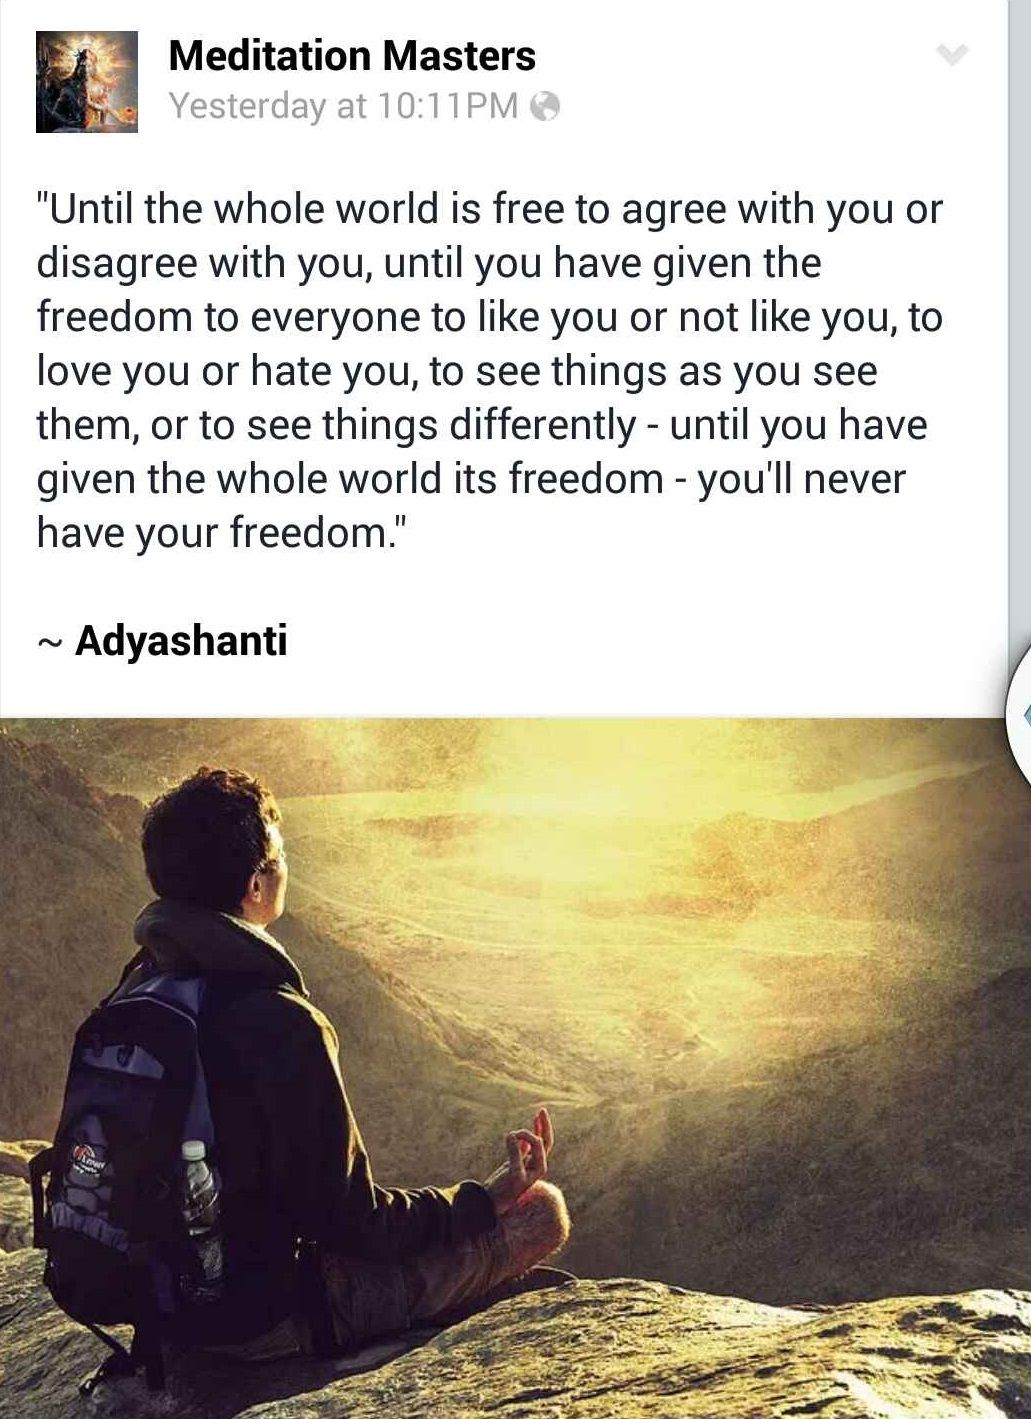 Adyashanti Quotes Until You Have Give The Whole World Its Freedom You'll Never Have